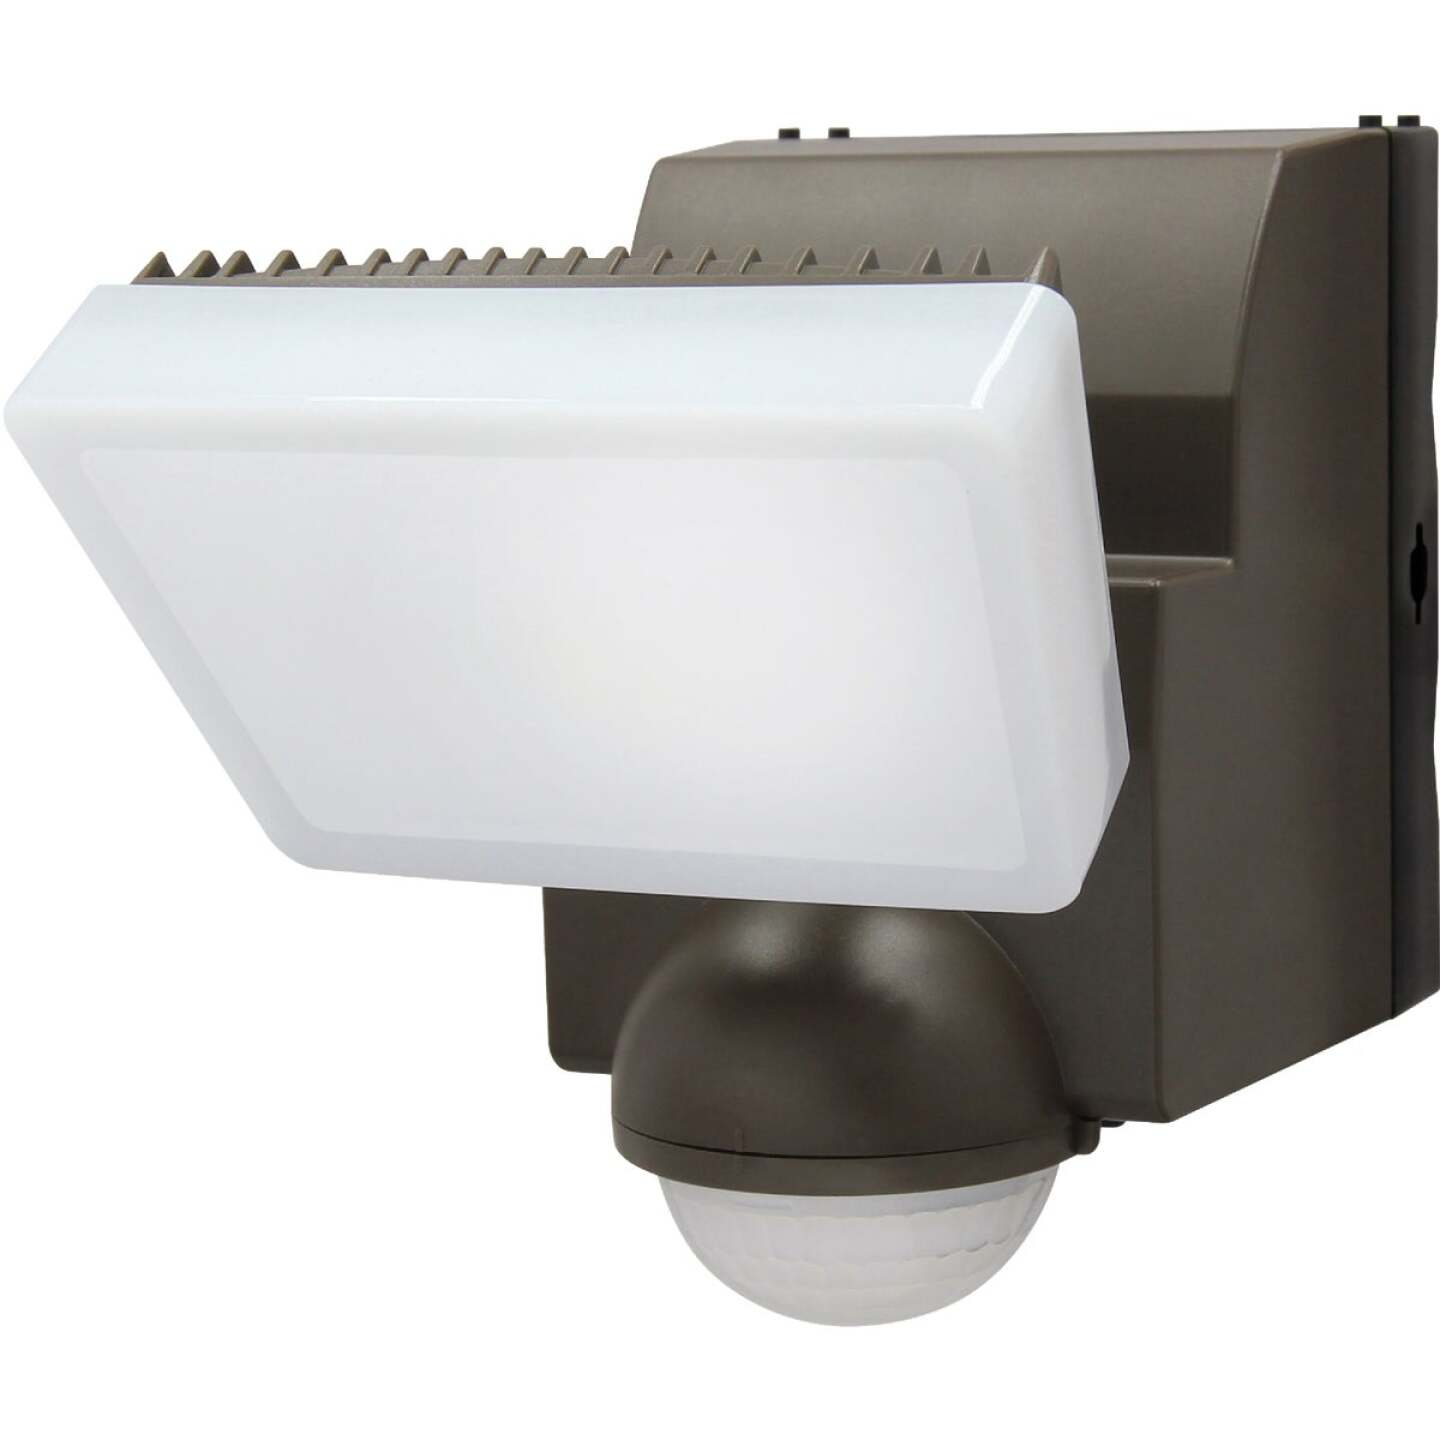 IQ America Bronze 500 Lm. LED Motion Sensing Battery Operated 1-Head Security Light Fixture Image 1